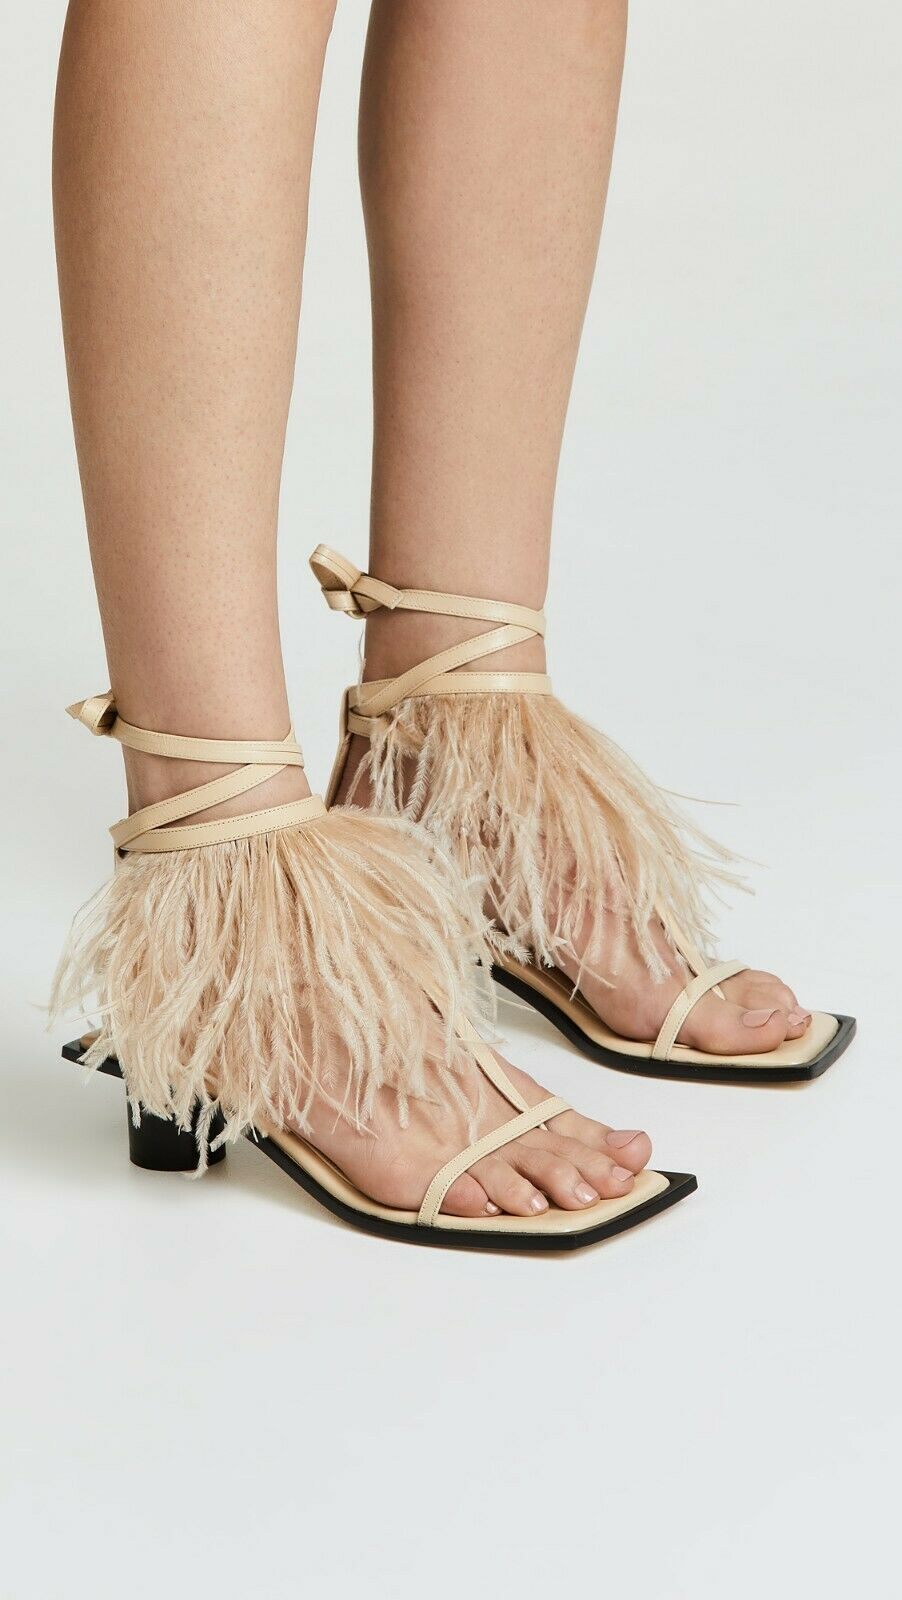 Helmut Lang Gladiator Feather Mid Heel Leather Sandal Sand   565 Authentic